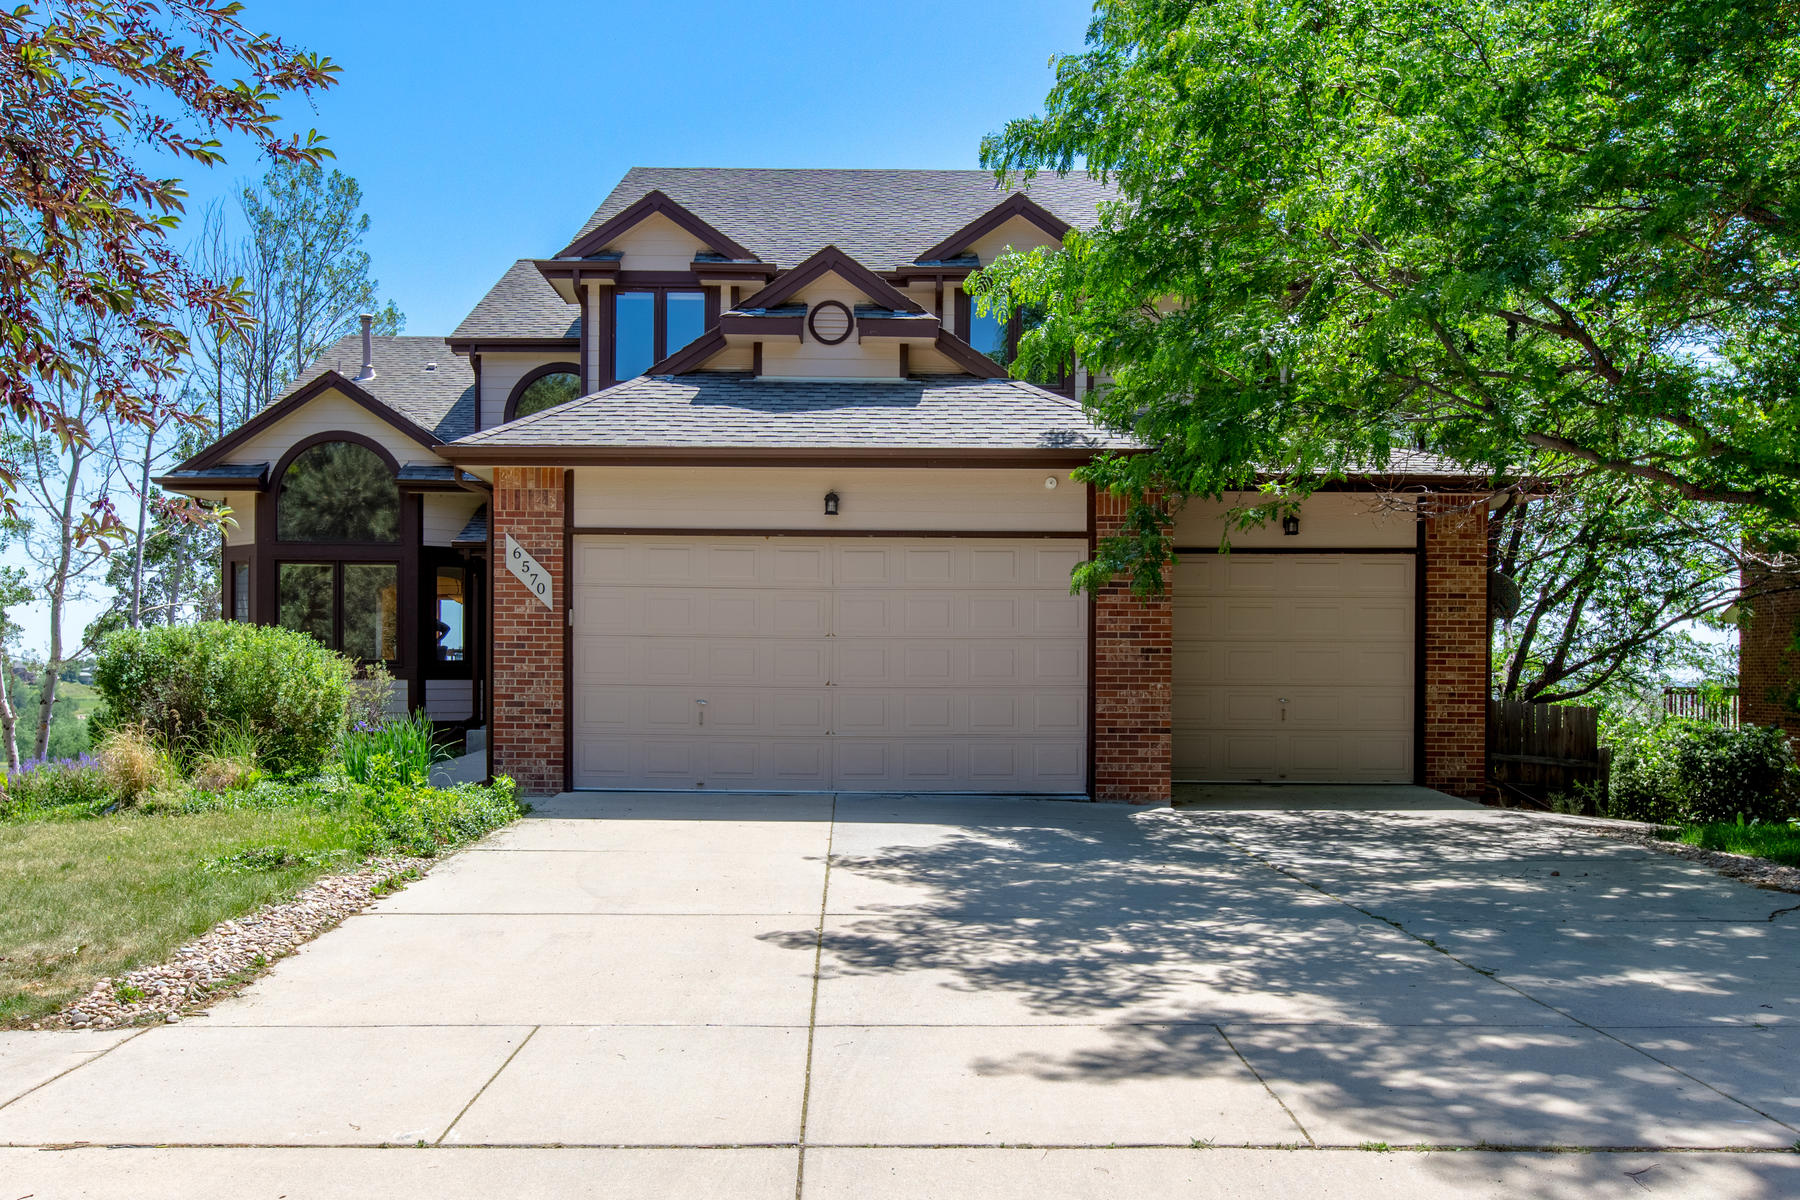 Single Family Home for Active at Your Own Private Retreat With Golf Course Views 6570 Fairways Dr Longmont, Colorado 80503 United States